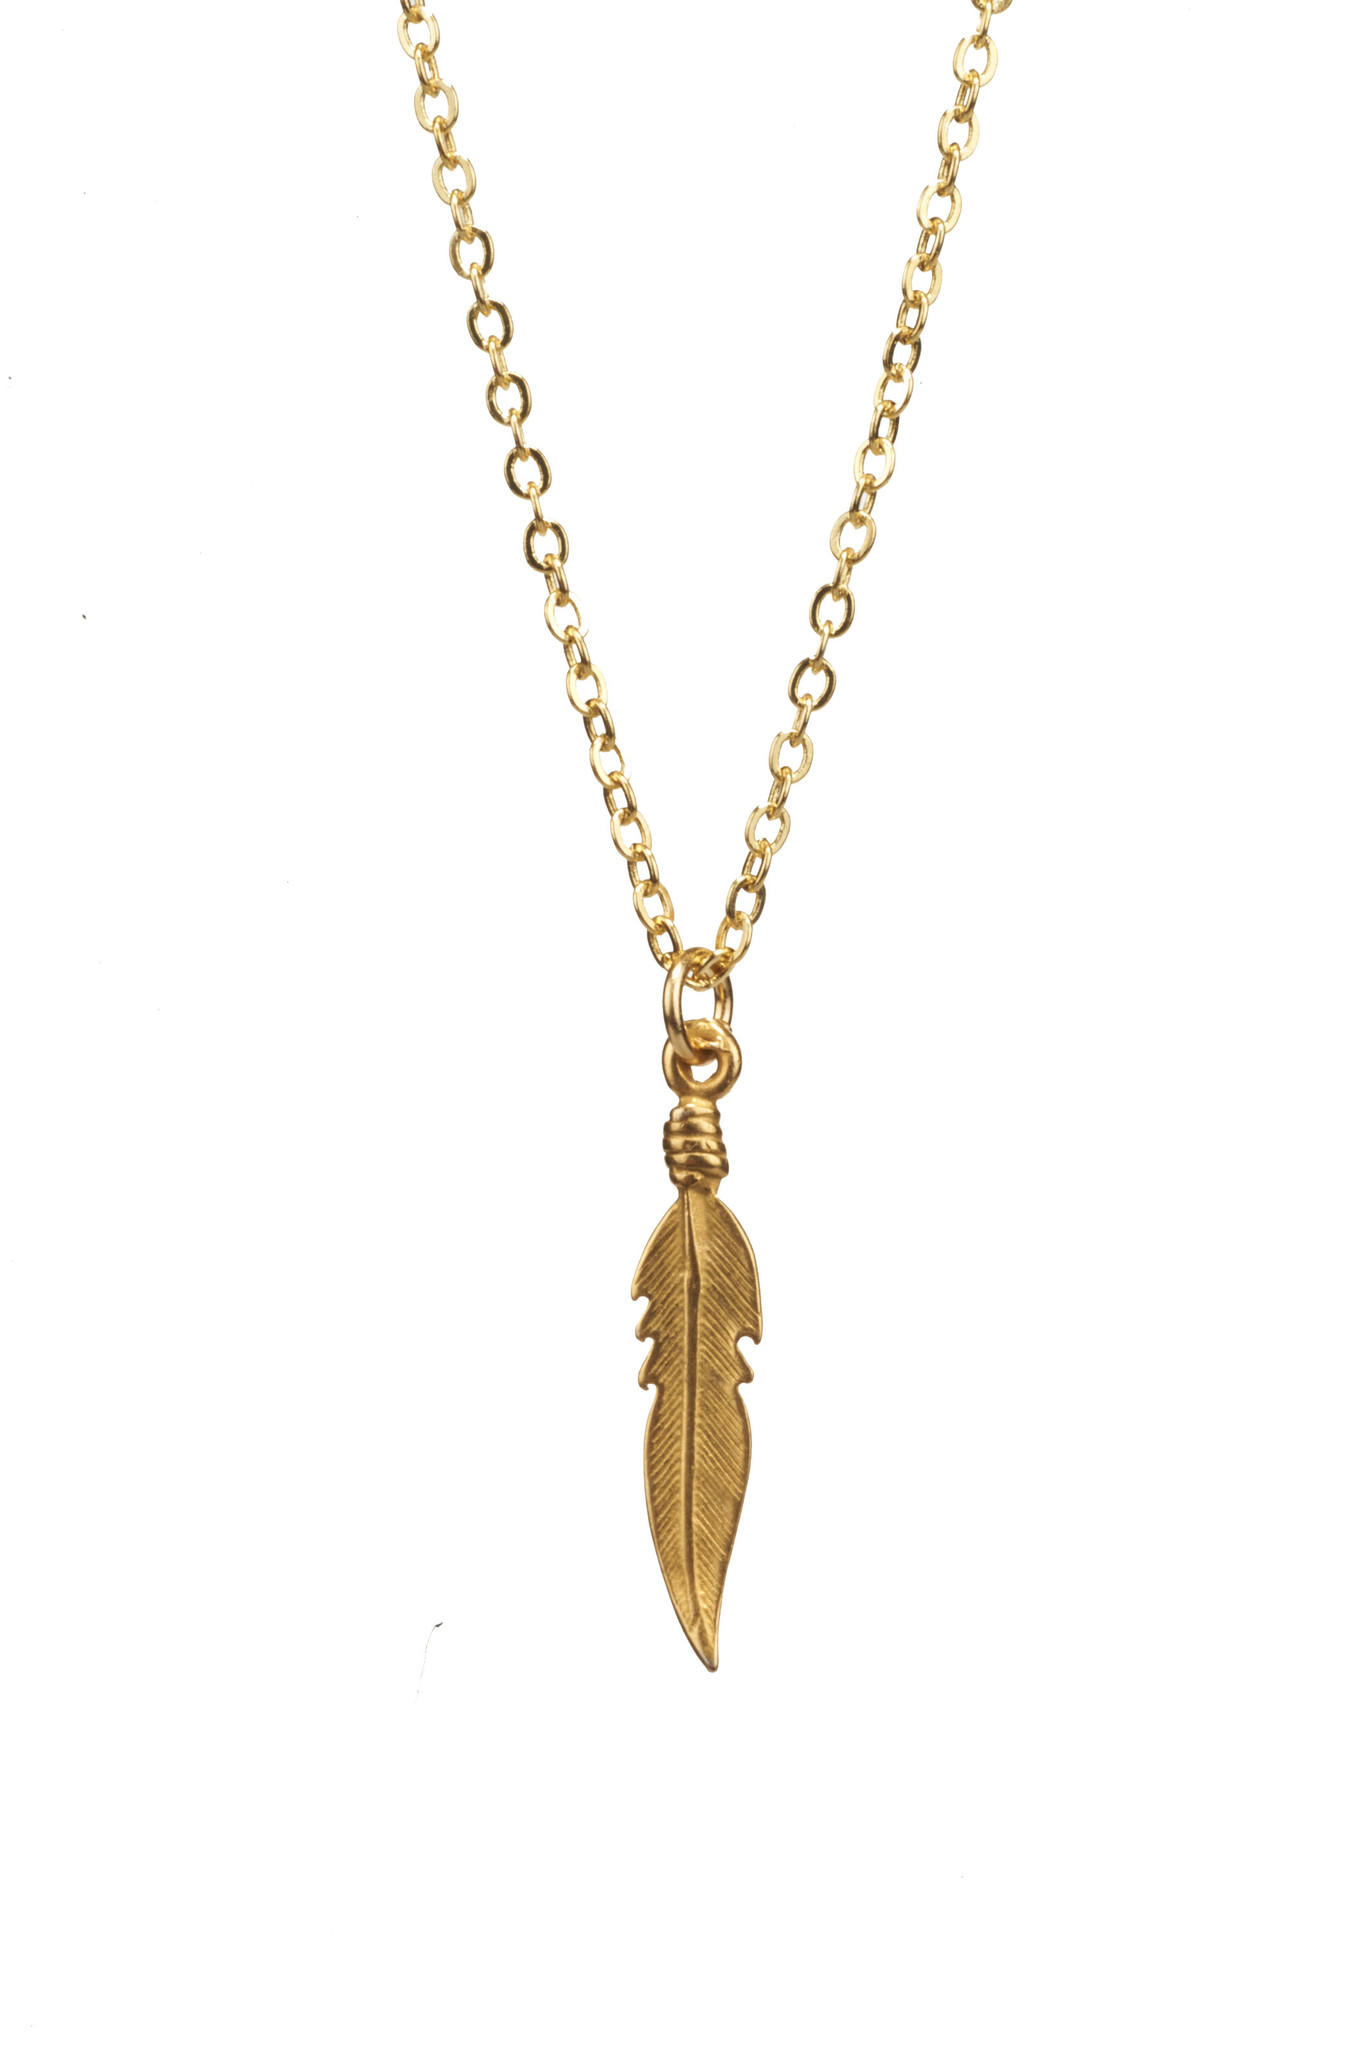 Mini Lucky Feather Charm Necklace in Gold from Sunday Girl Studio 10cb42ca4